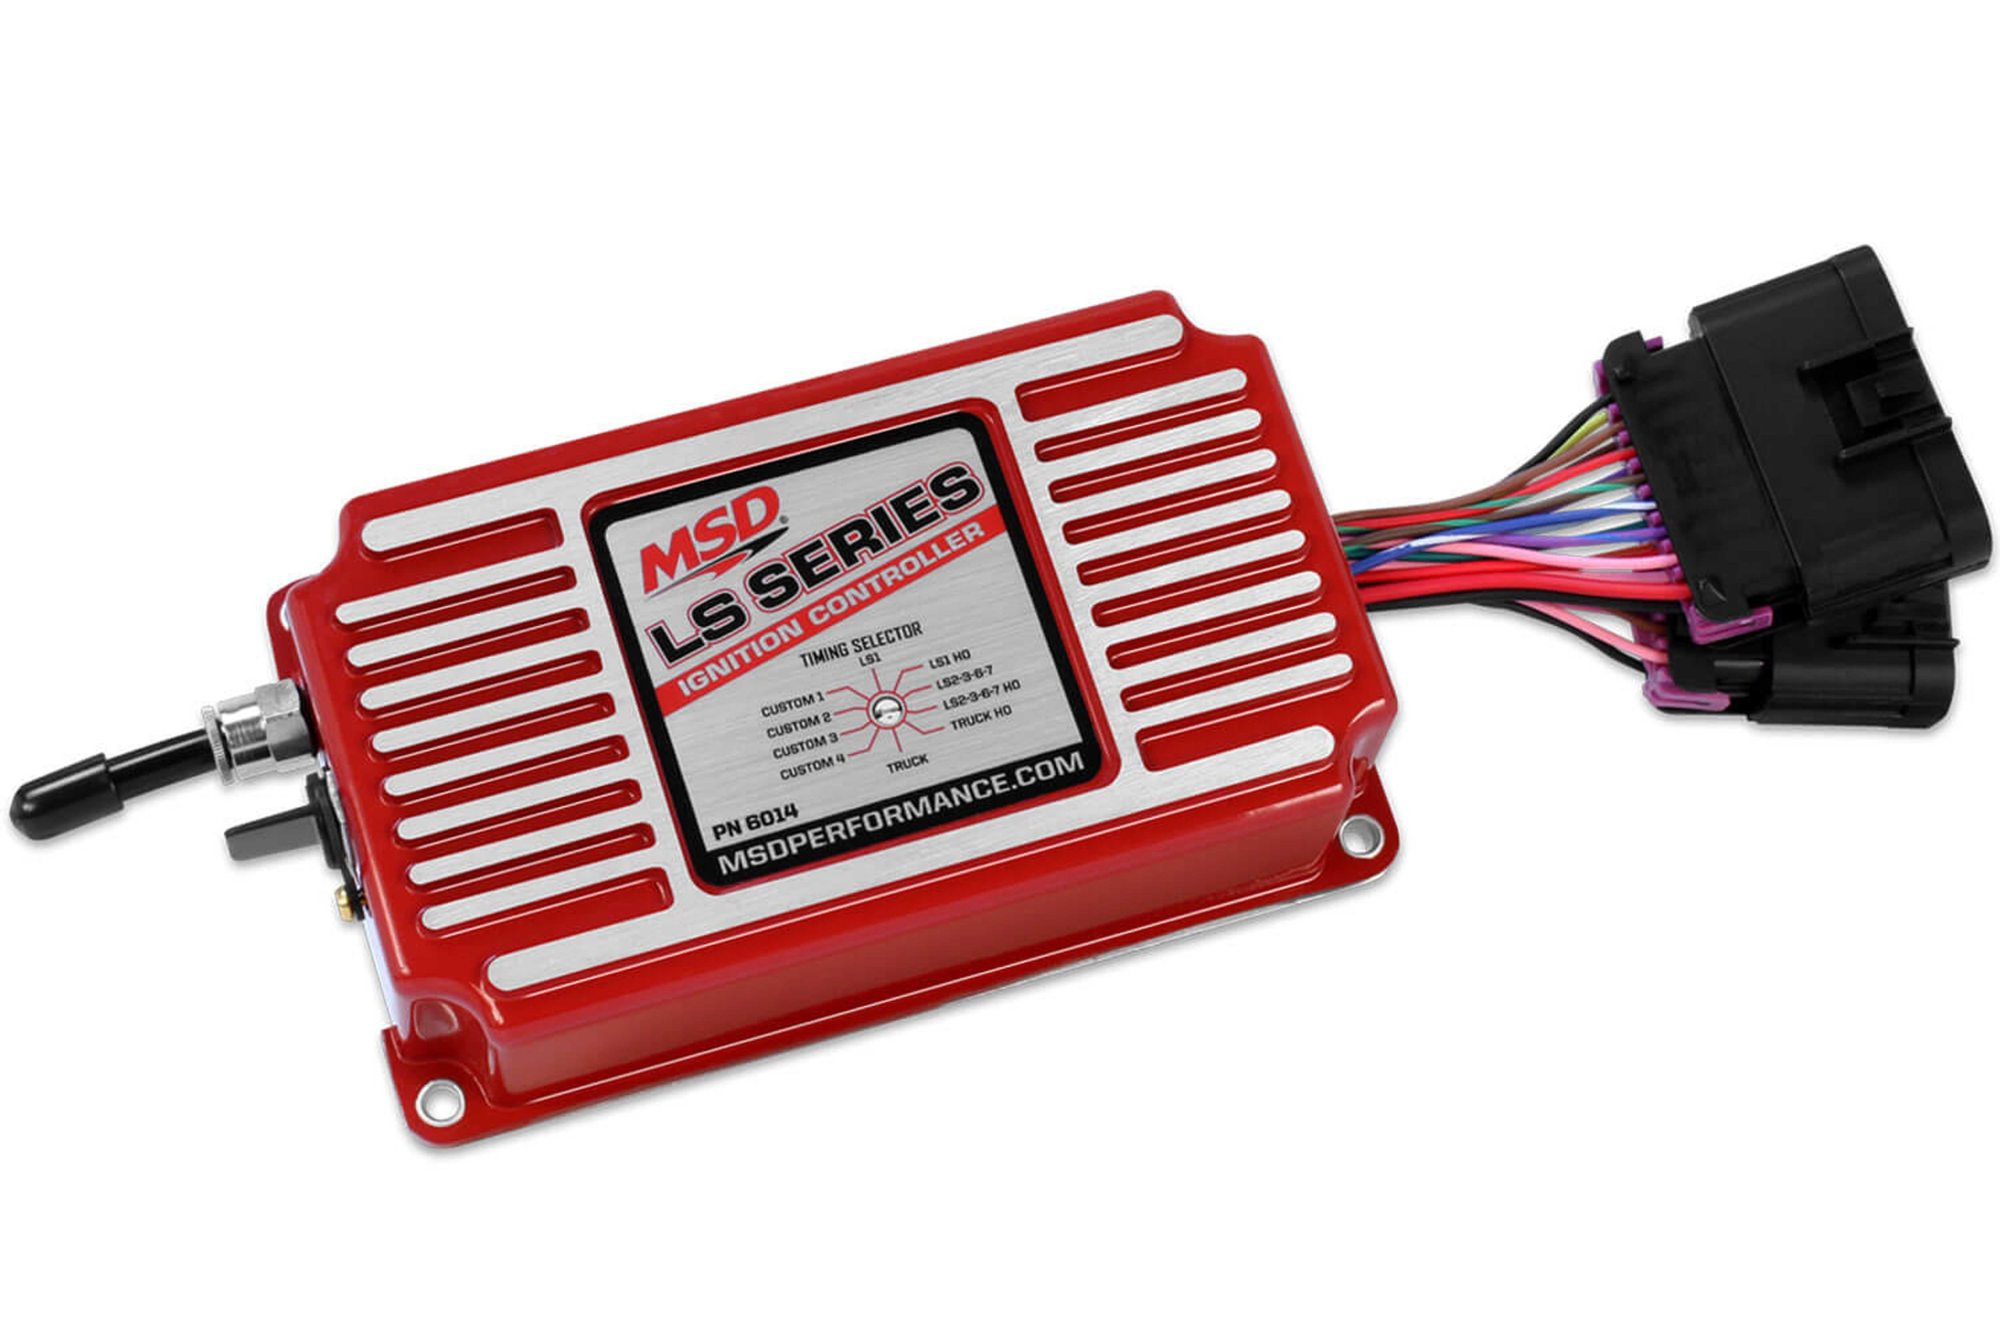 hight resolution of msd ignition controller for ls engines has huge feature set